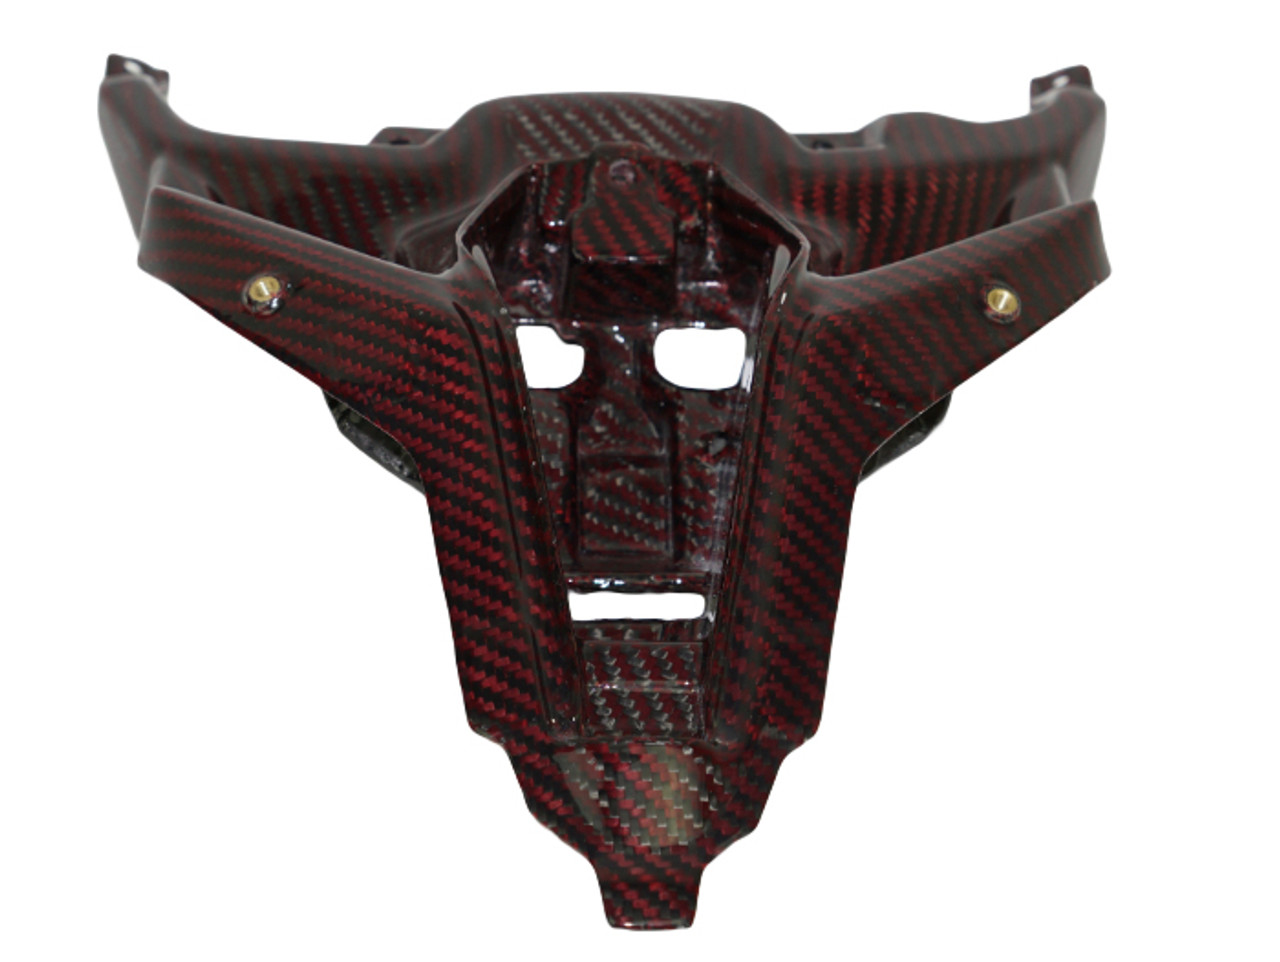 Tail Fairing Stay in Black and Red Glossy Twill Weave Carbon Fiber for Ducati Panigale V4